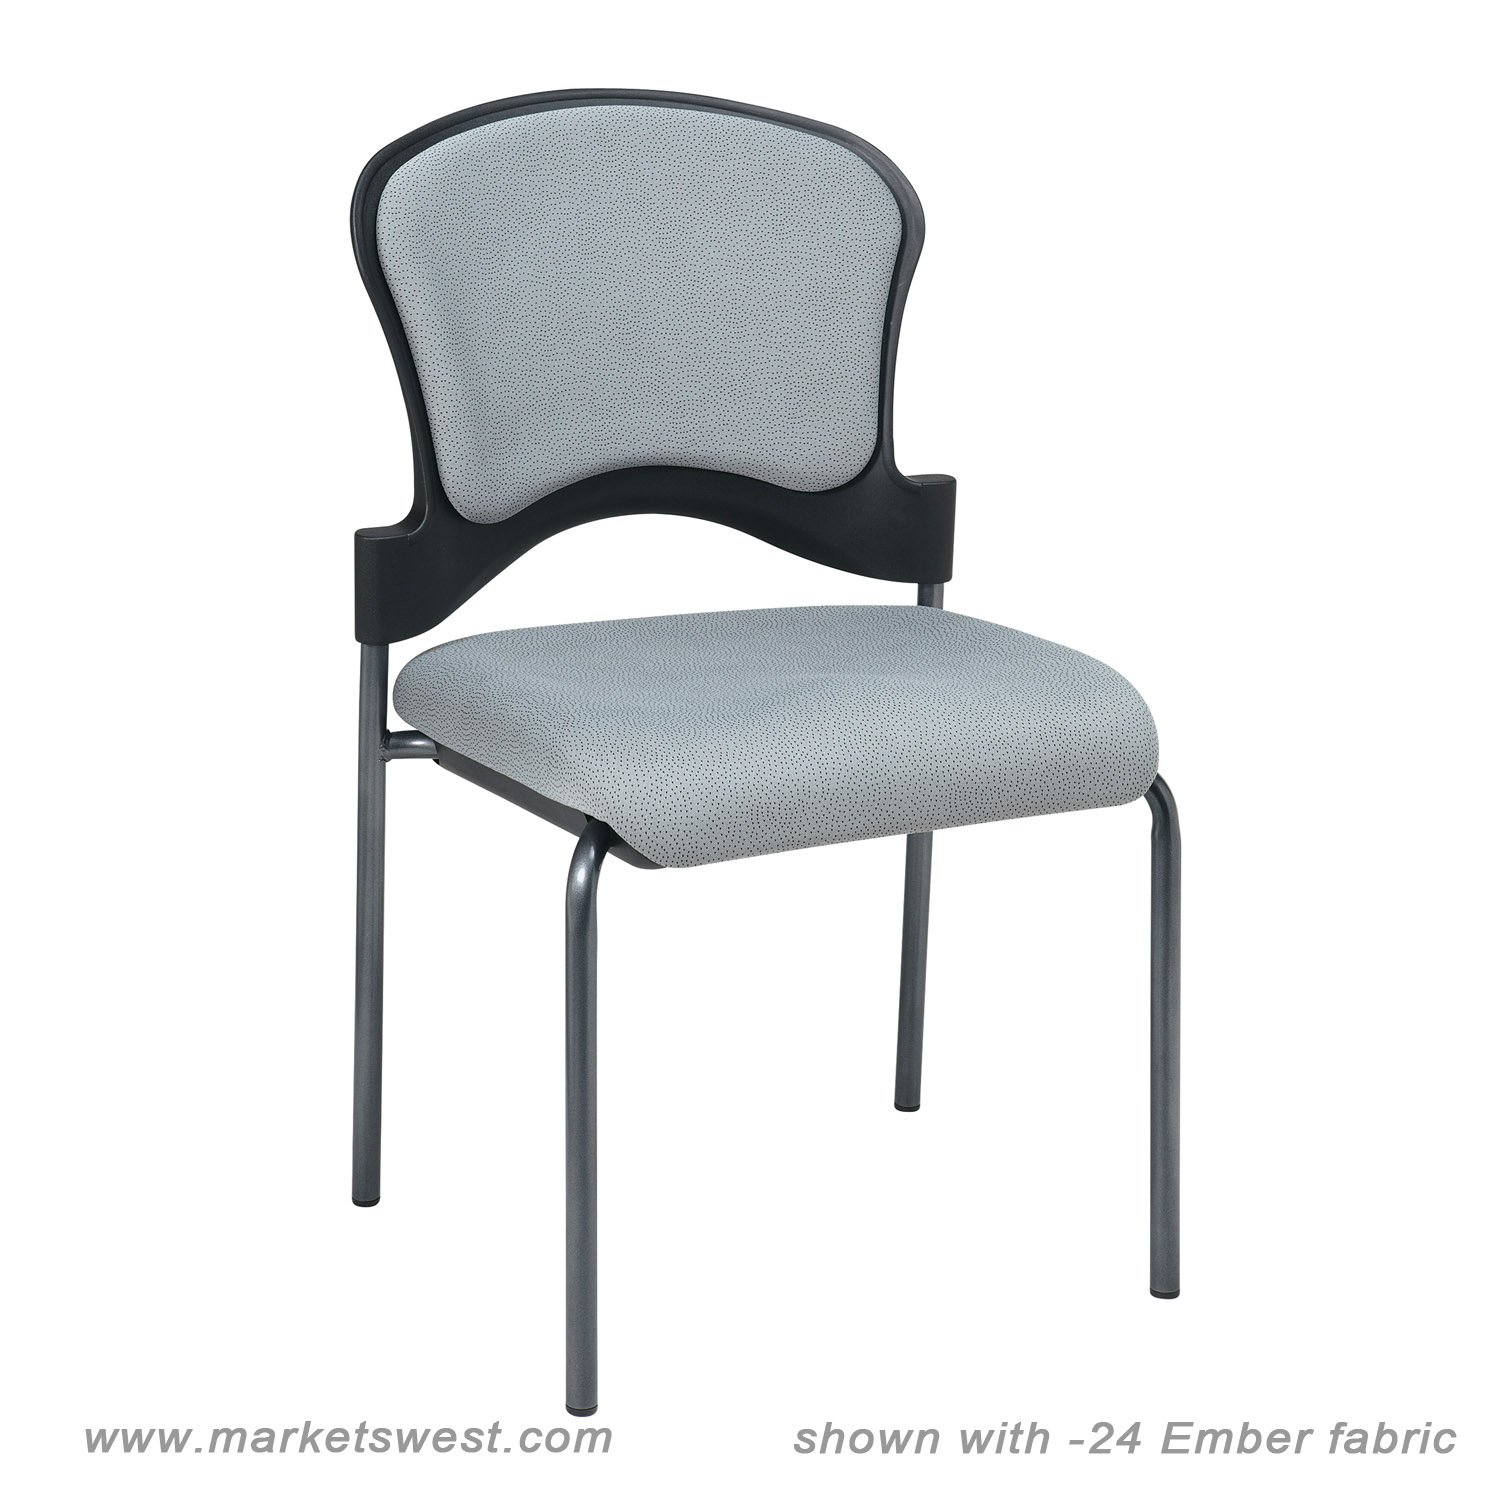 armless folding chair grey fabric office uk upholstered contoured back visitors with